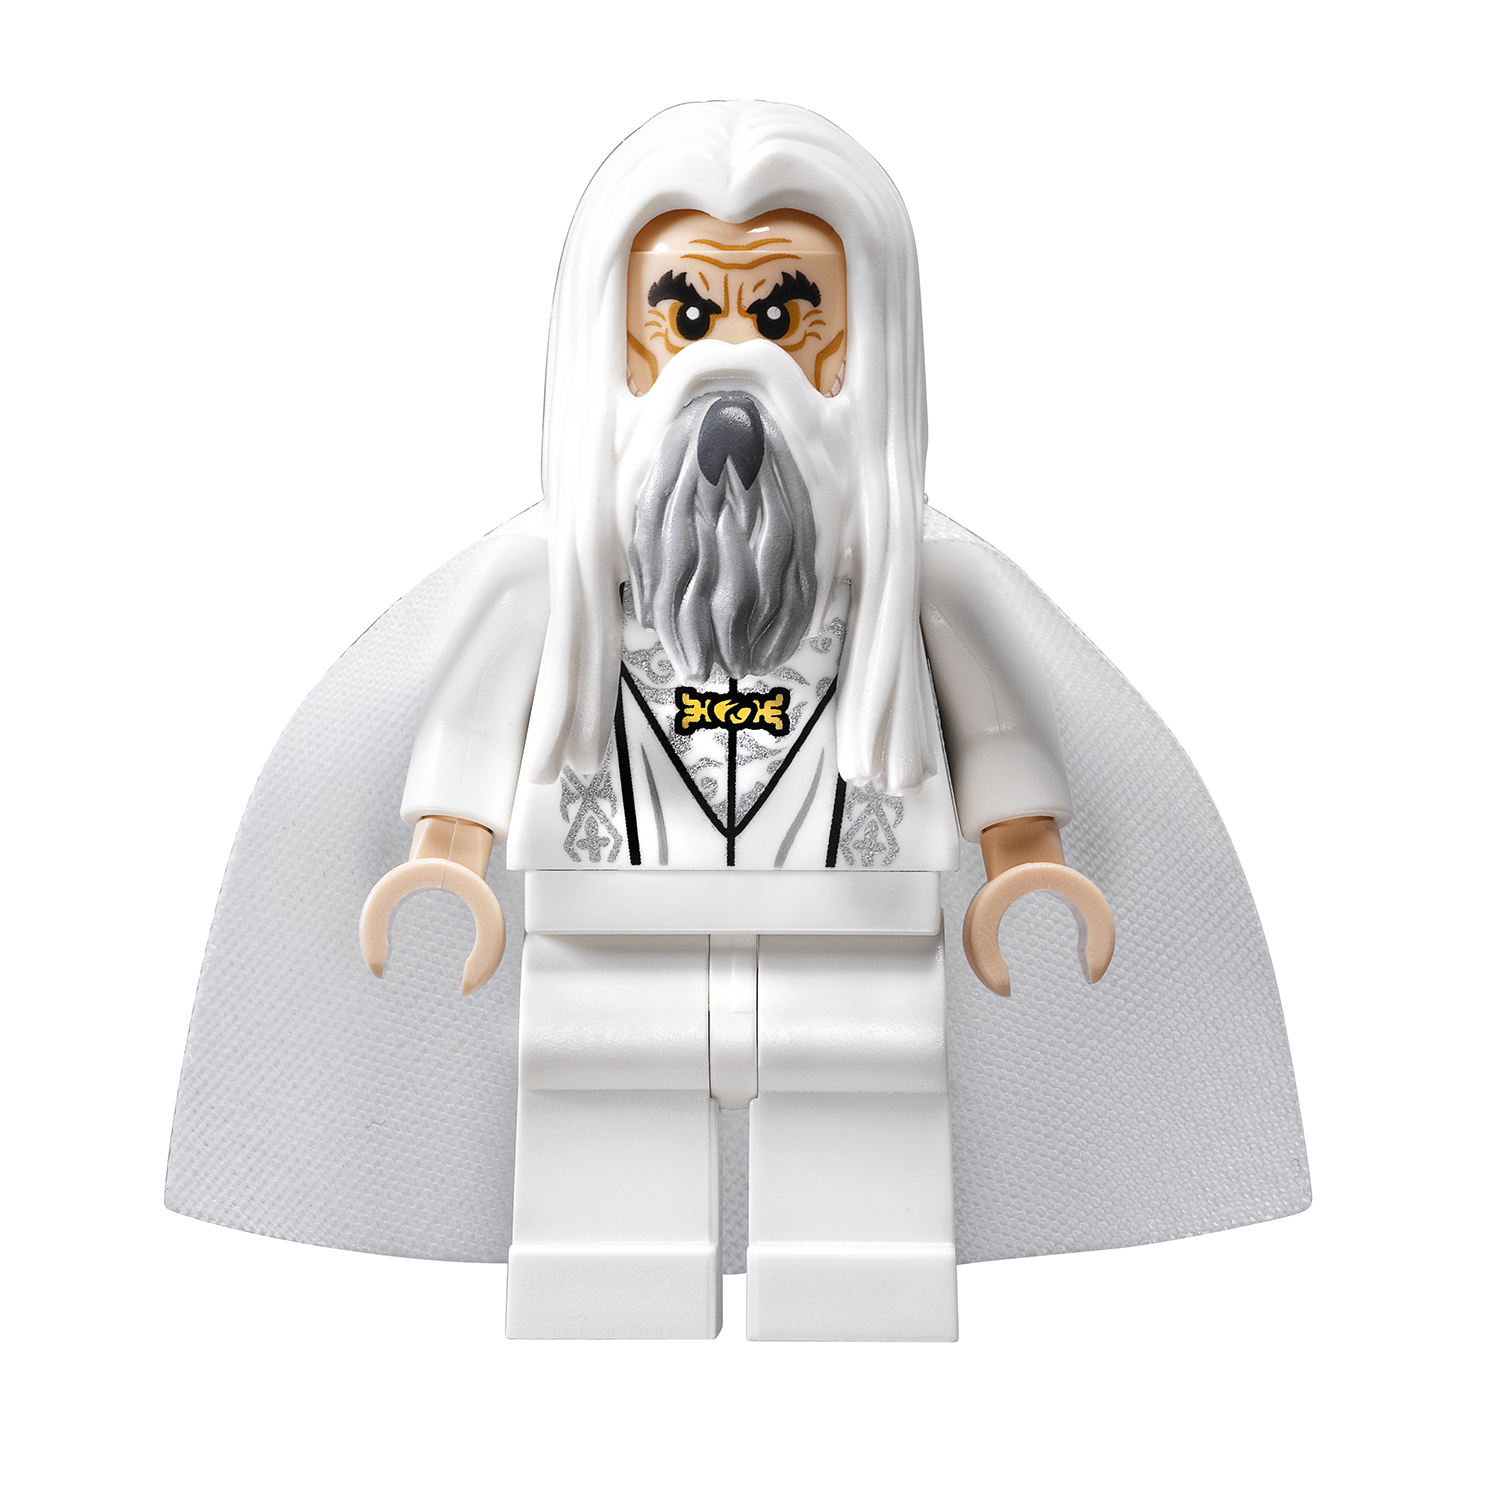 Lego Tower Of Orthanc 10237 Saruman Minifigure The Brick Life